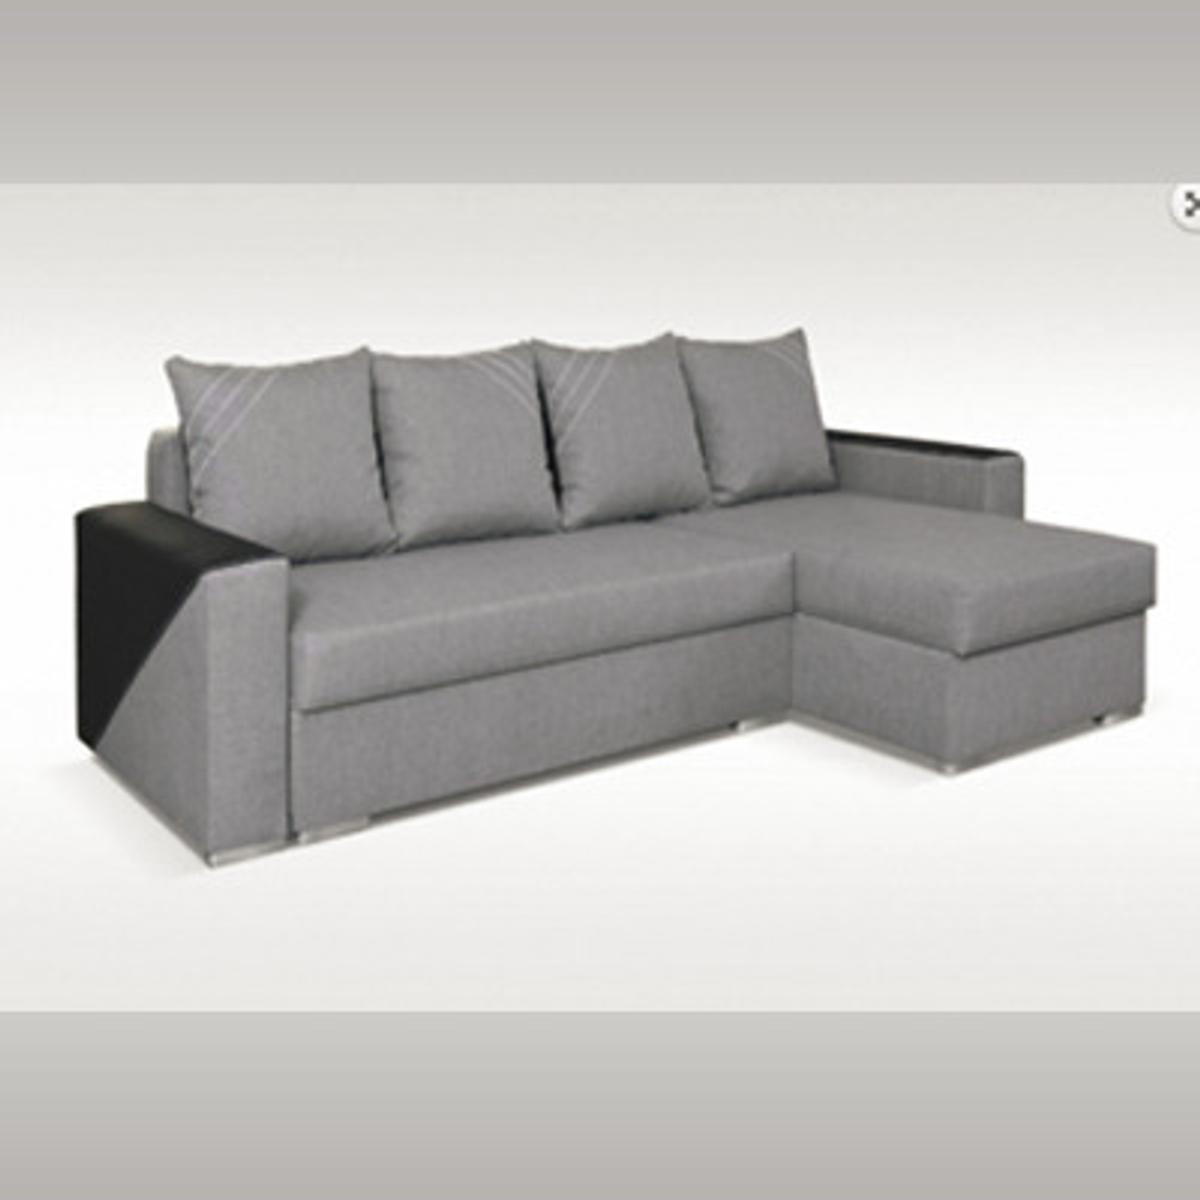 Sofa Foam Leeds Brand New Luxury Tango Corner Sofa In Ls19 7tu Leeds For